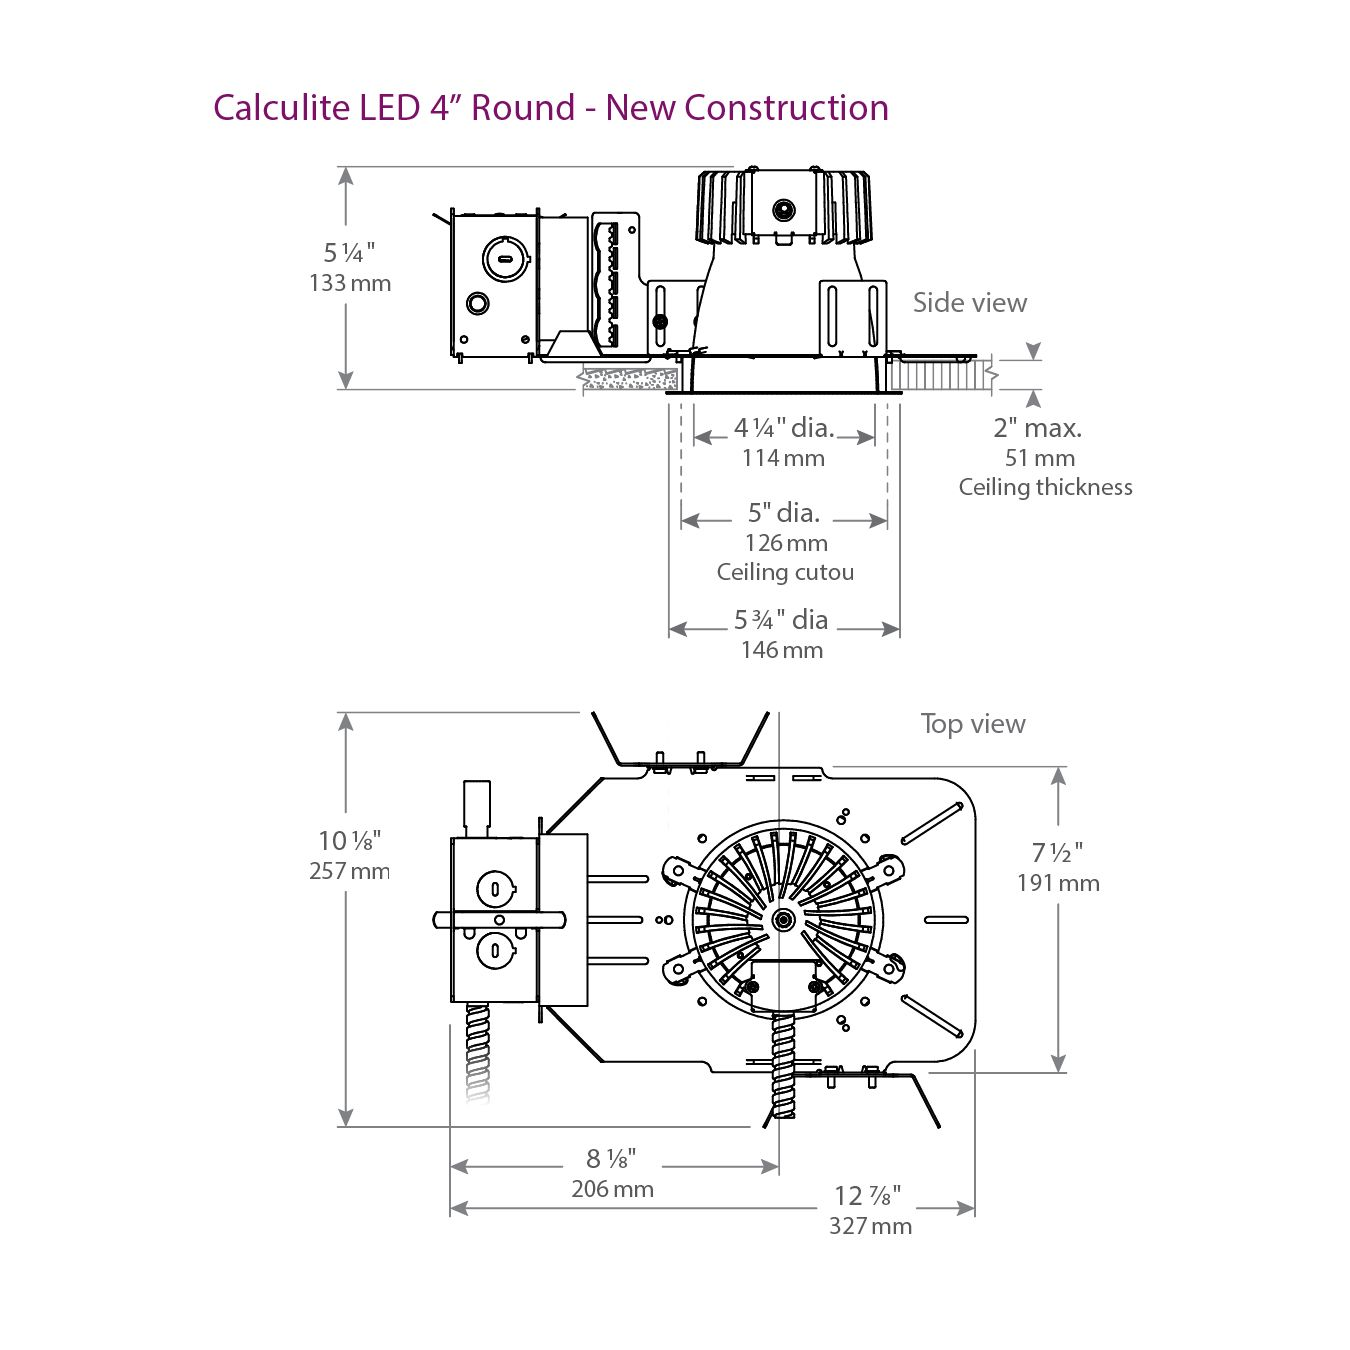 hight resolution of lightolier c4l calculite led 4 round aperture wide beam 1500 2250 rh alconlighting com wiring diagram